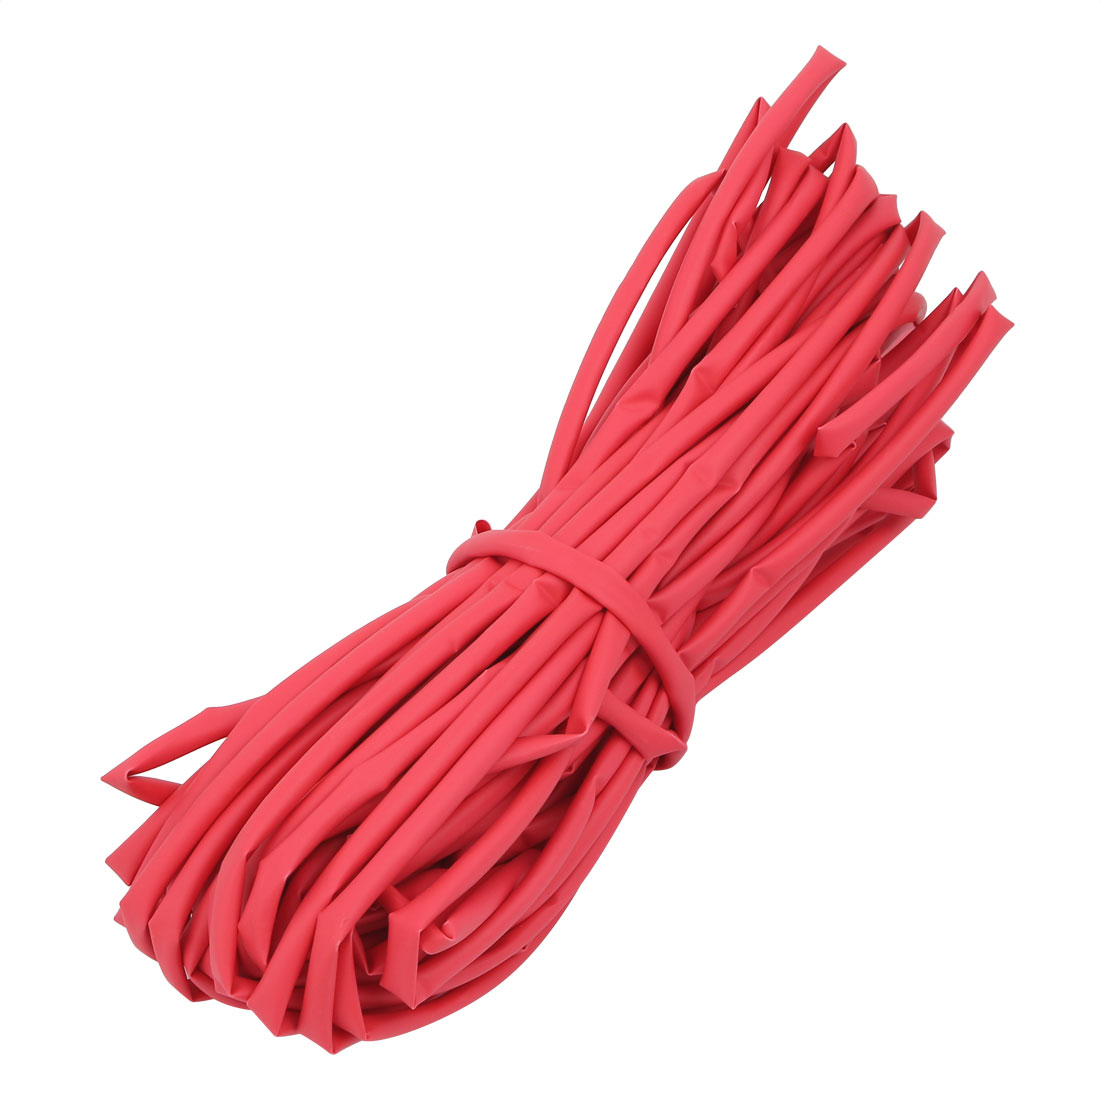 20M 4.5mm Inner Dia Polyolefin Flame Retardant Tube Red for Wire Repairing